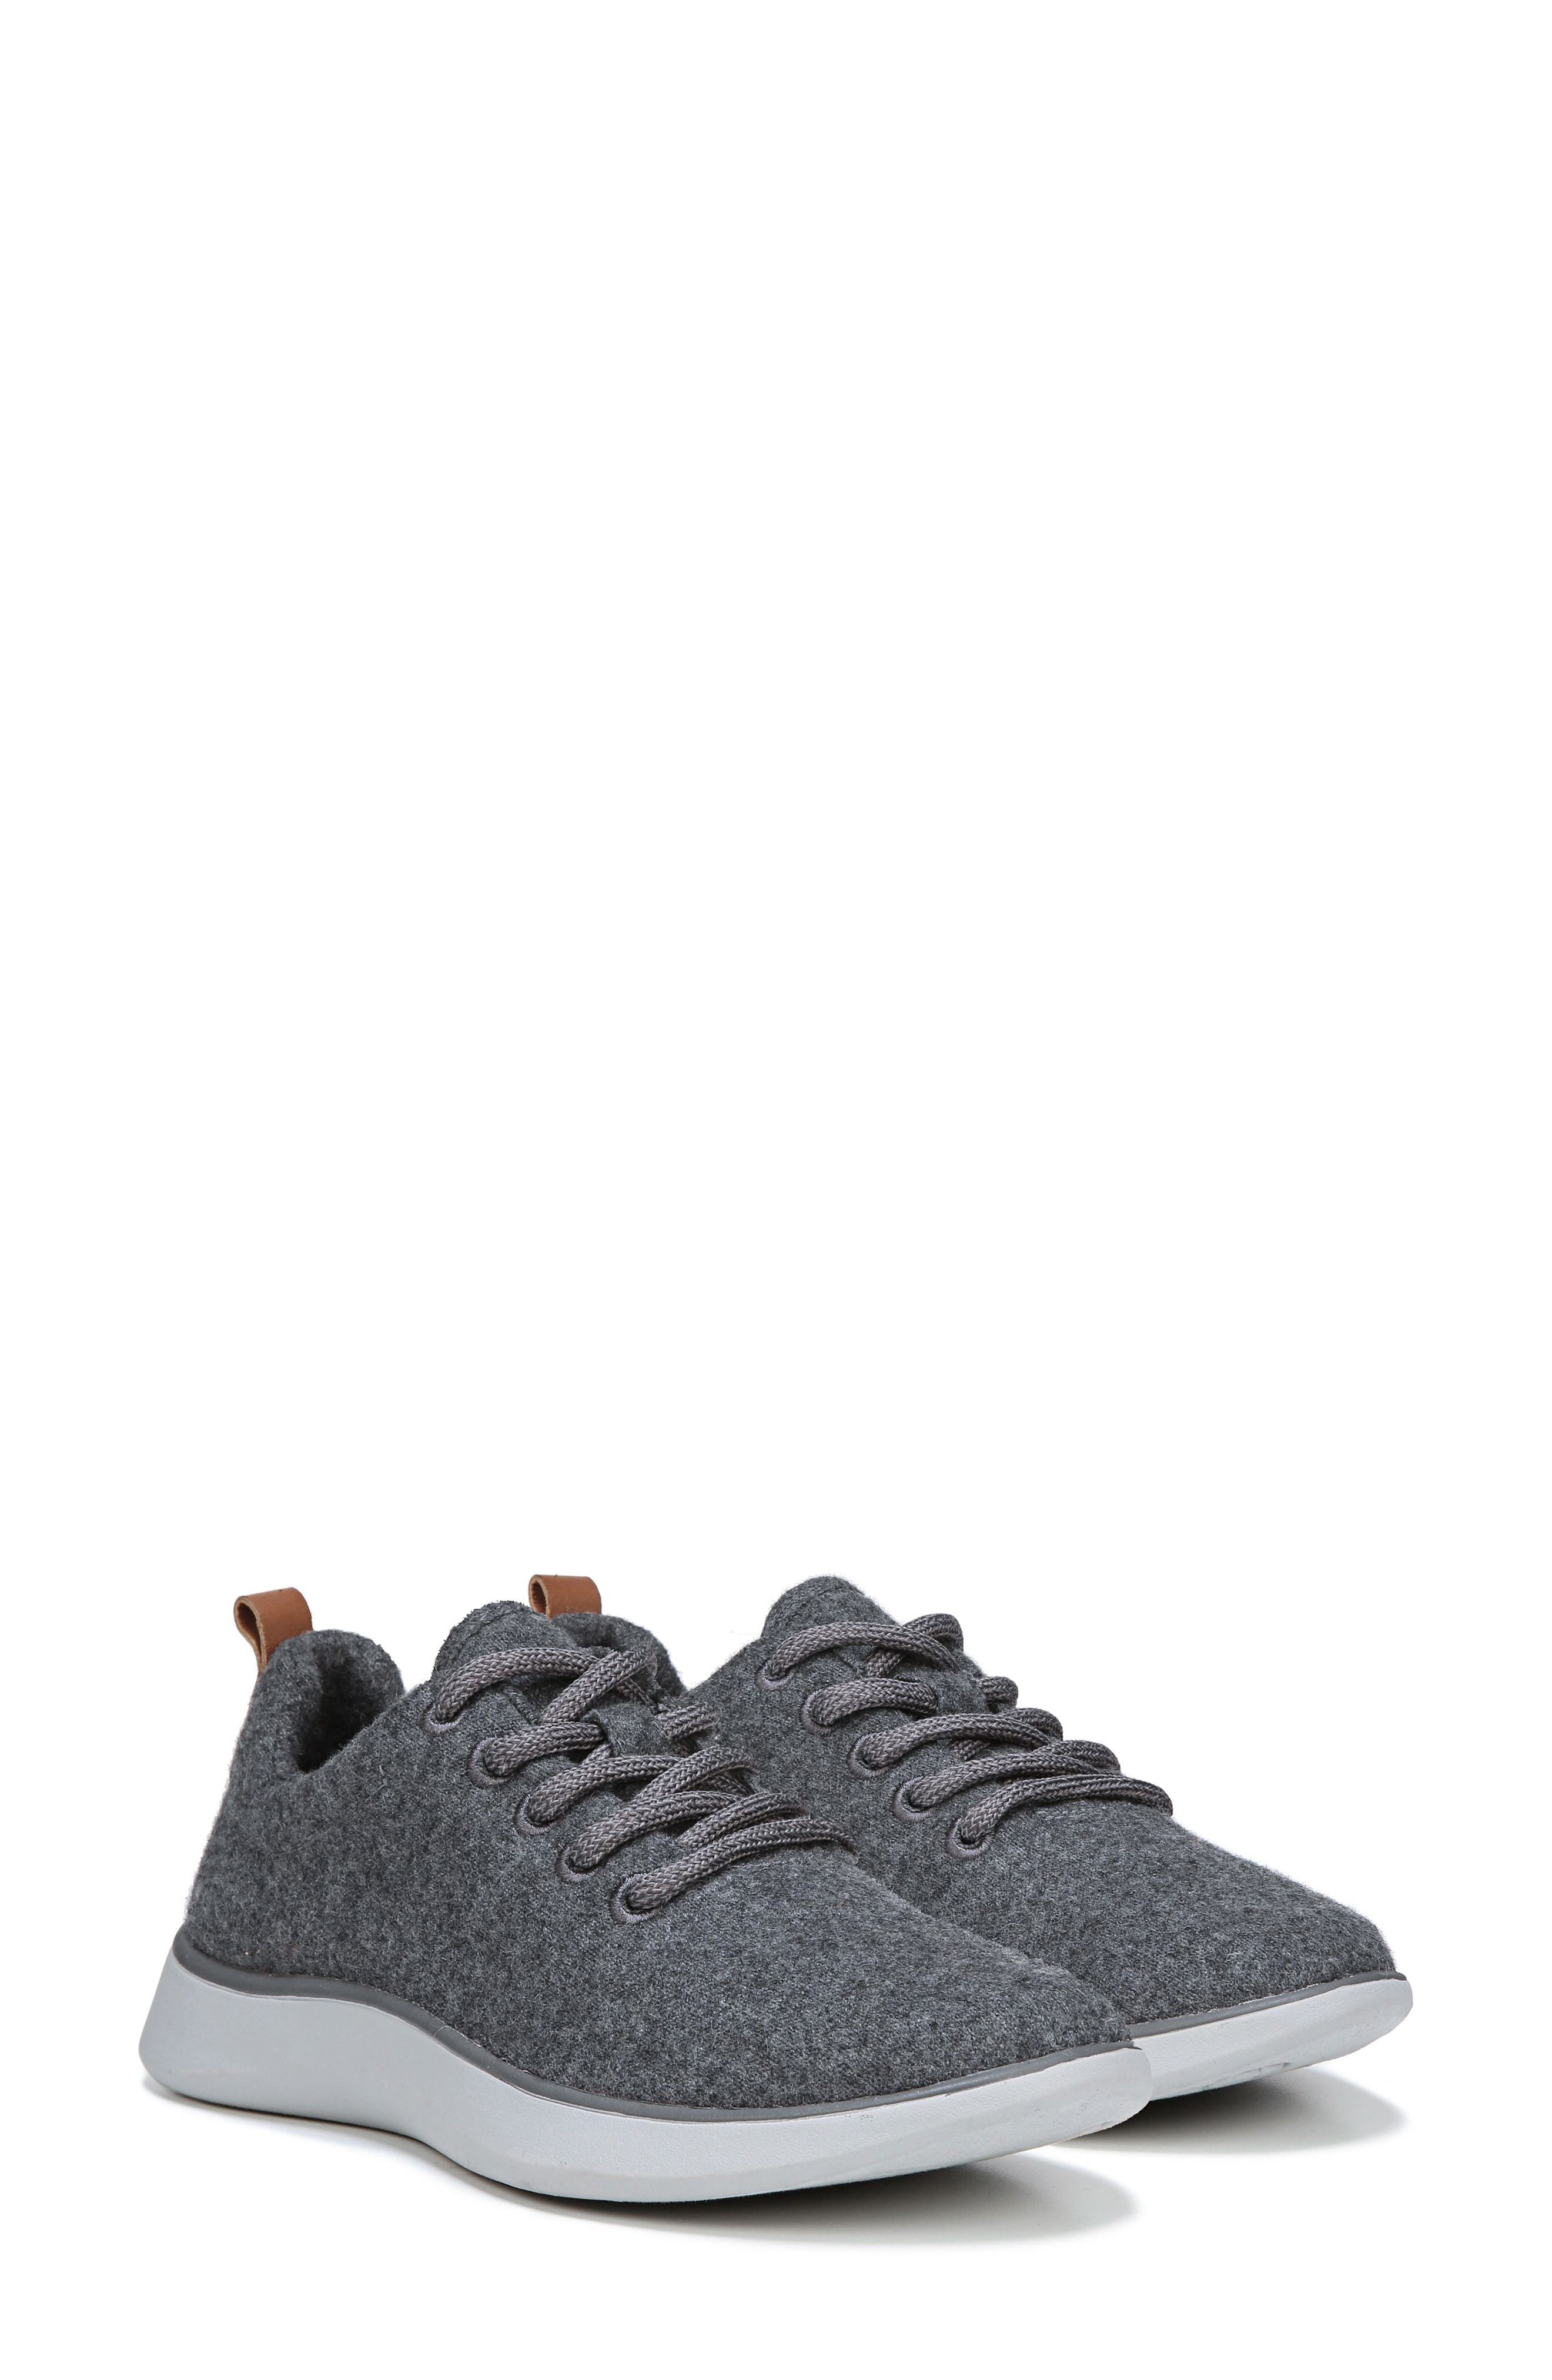 DR. SCHOLL'S, Freestep Sneaker, Alternate thumbnail 5, color, DARK GREY FABRIC